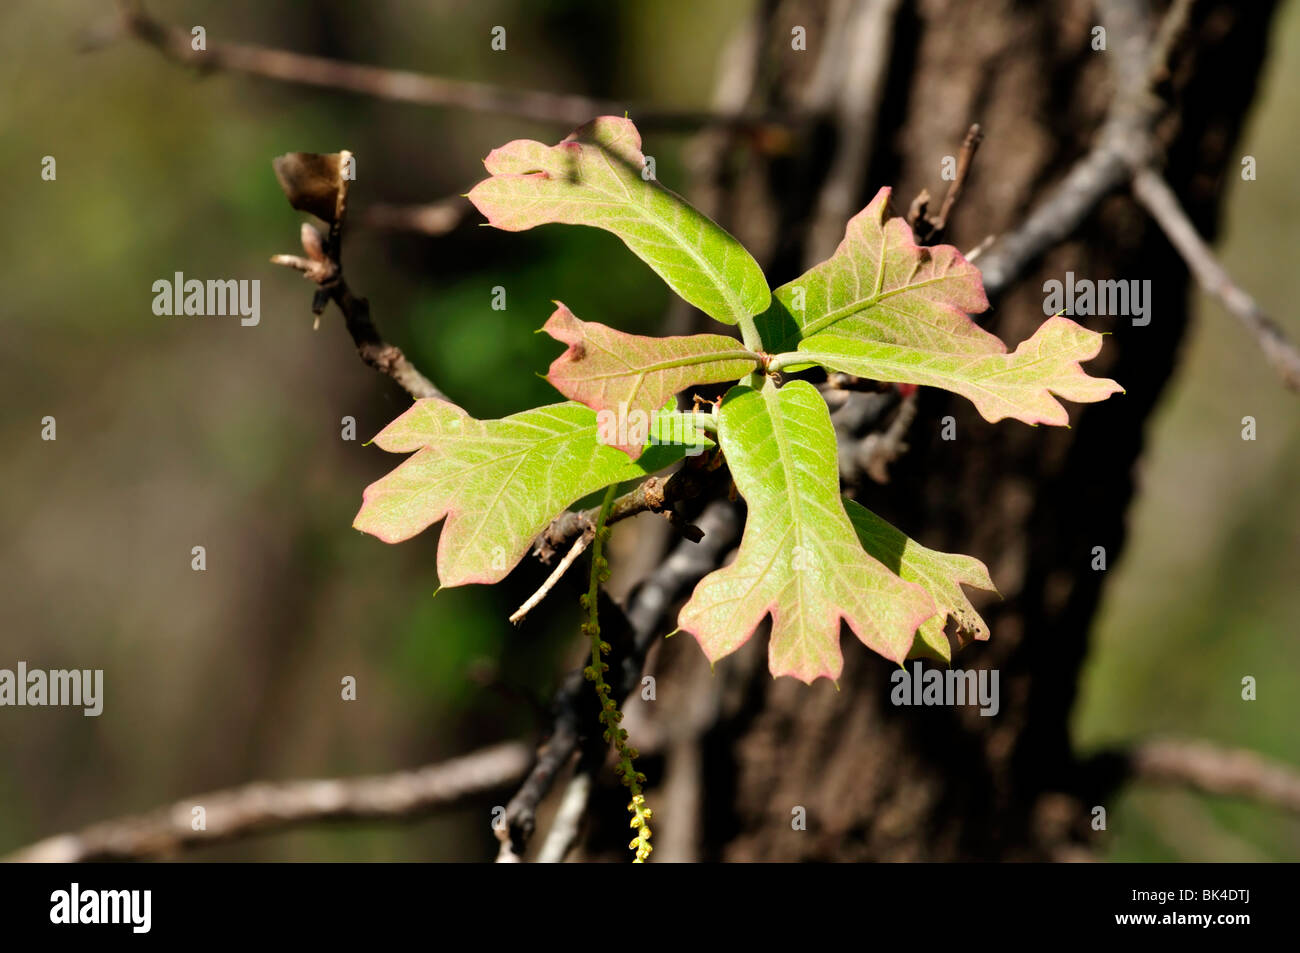 Newly emerged spring Blackjack Oak leaves. Closeup. Oklahoma, USA. - Stock Image